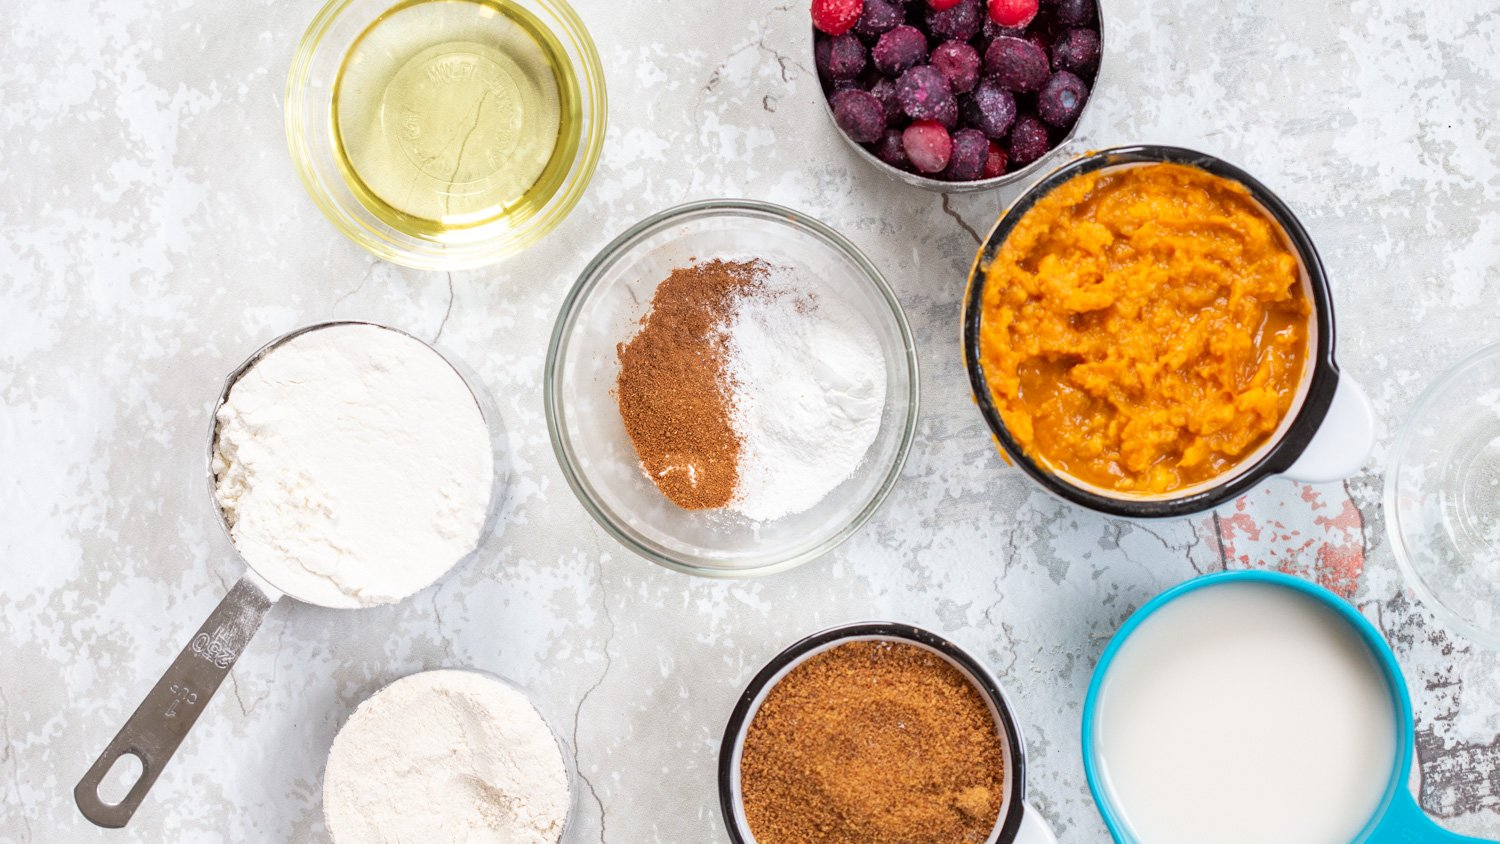 Vegan Sweet Potato Bread Ingredients in bowls and cups